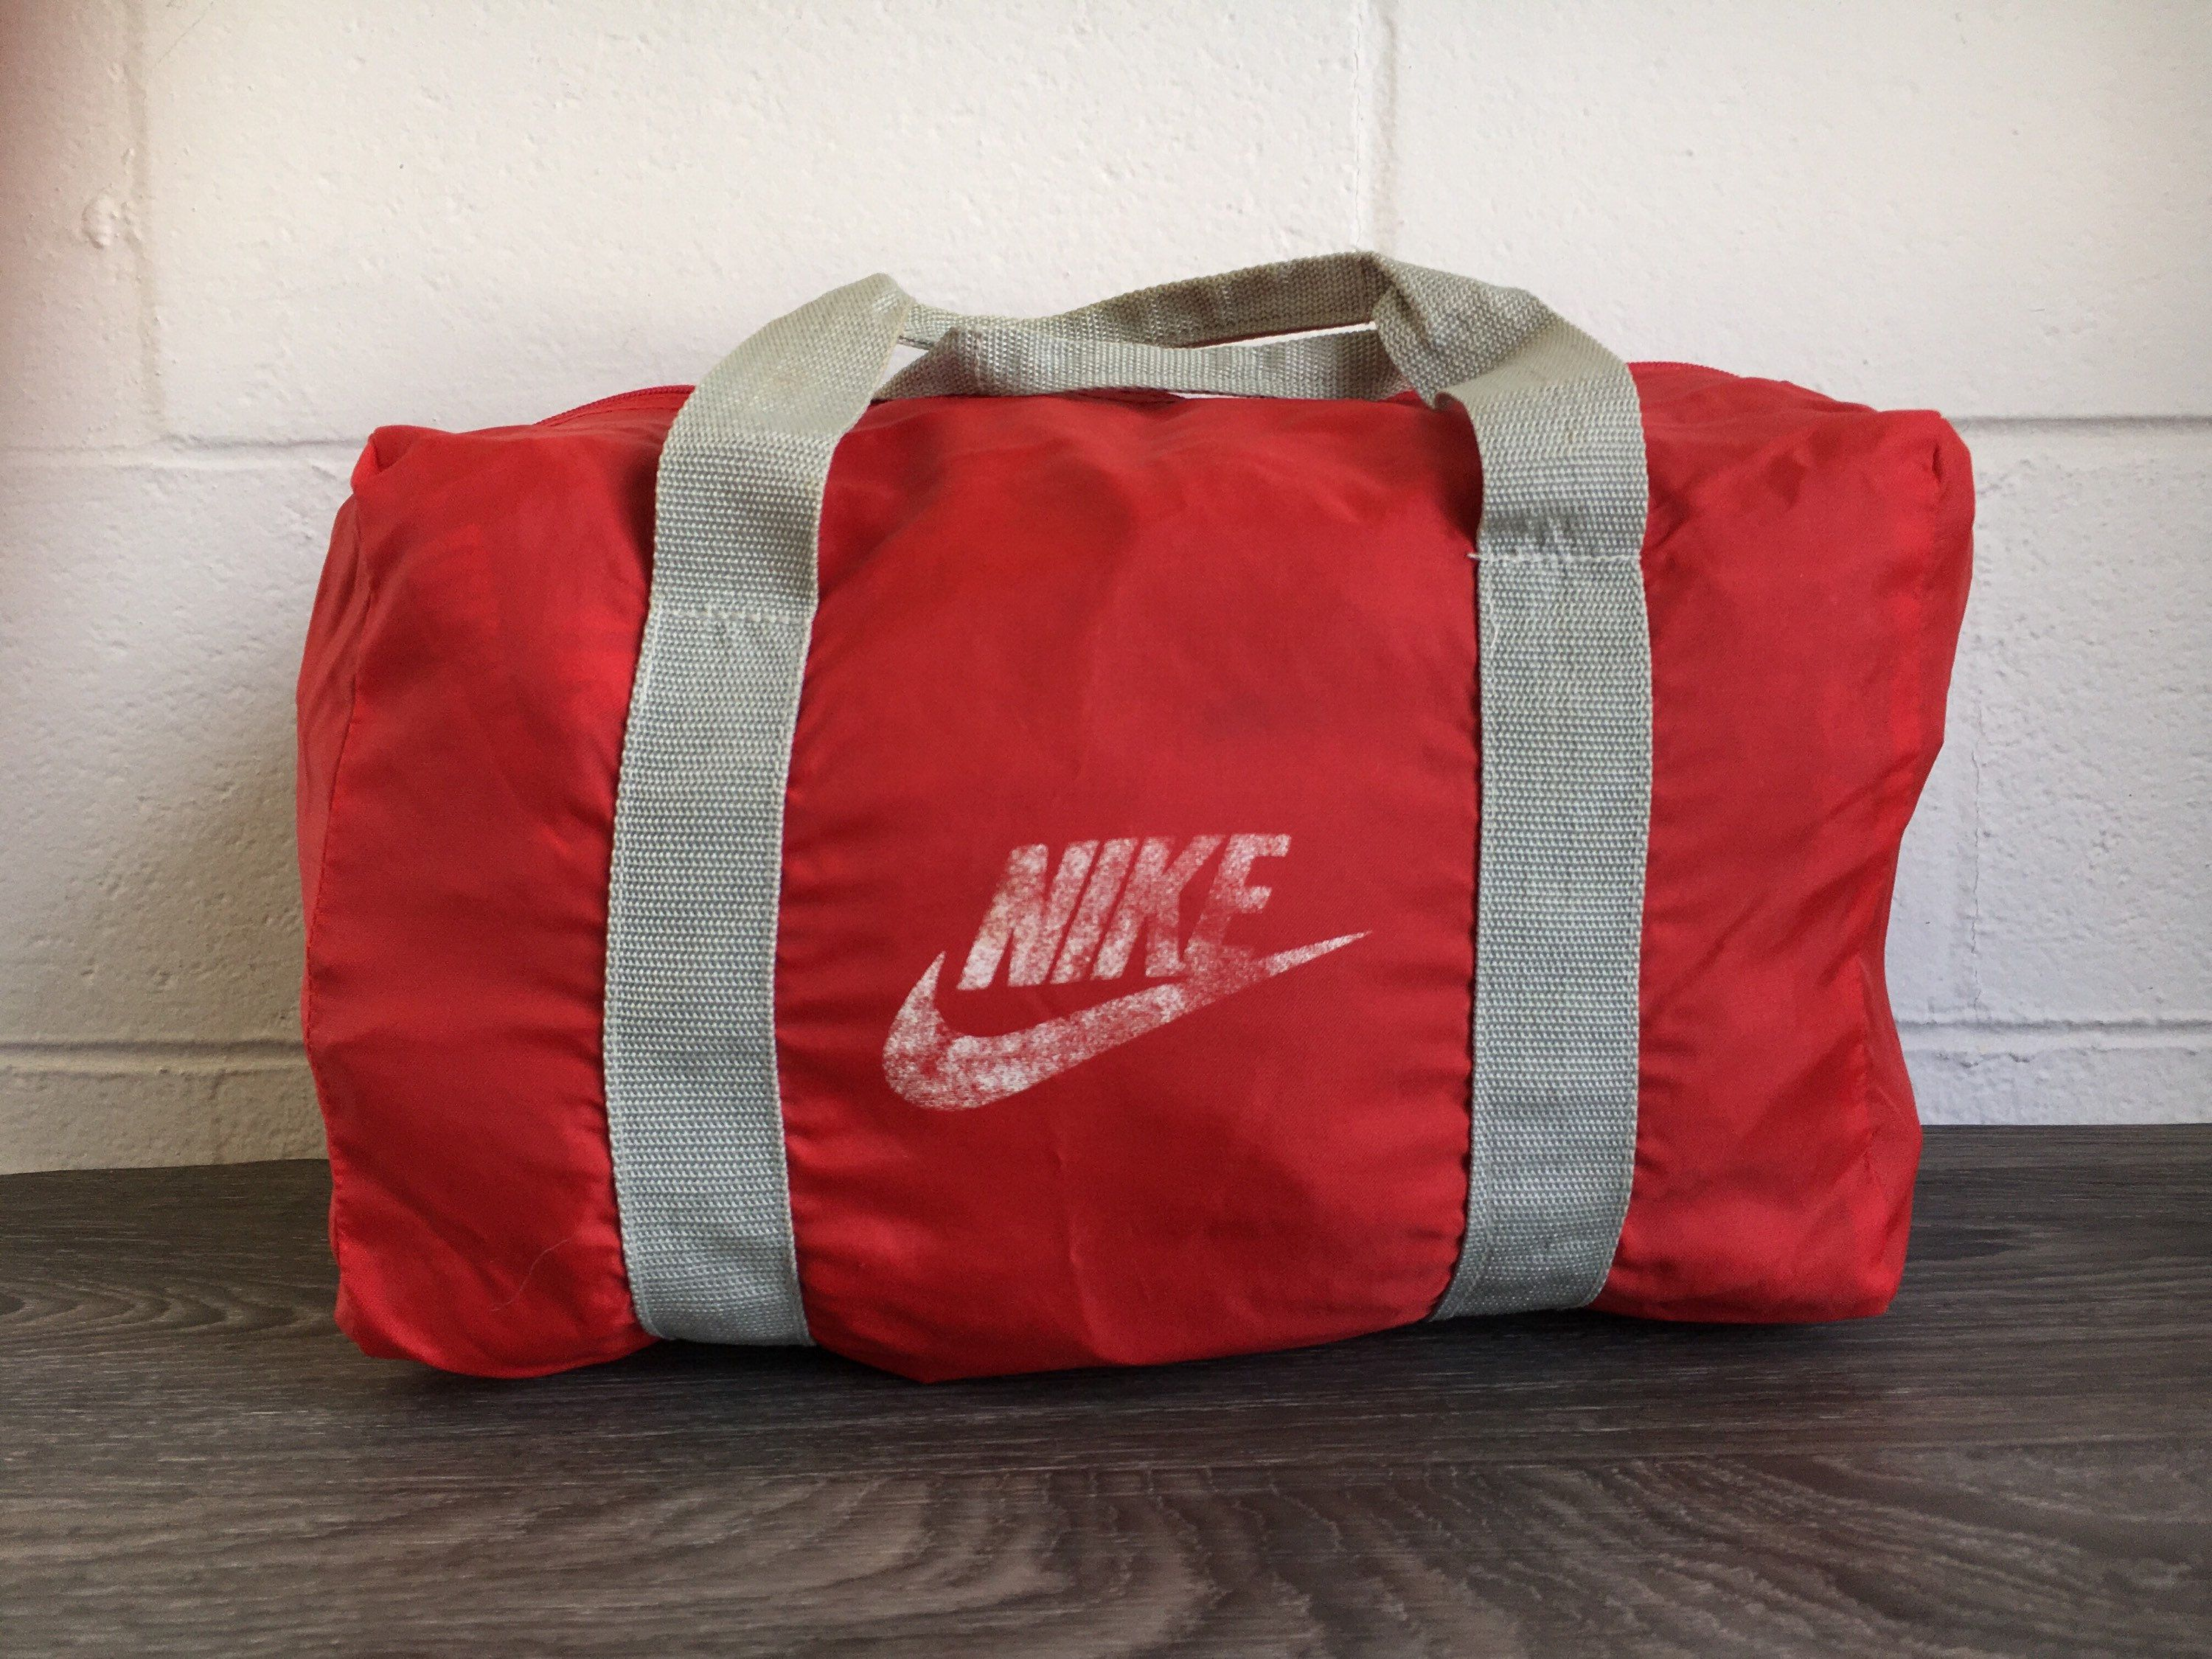 NIKE DUFFLE Bag 80 s Vintage Grey Tag Gym Travel Pack Classic Red Sports  Overnight by sweetVTGtshirt on Etsy 2af601741dc1a